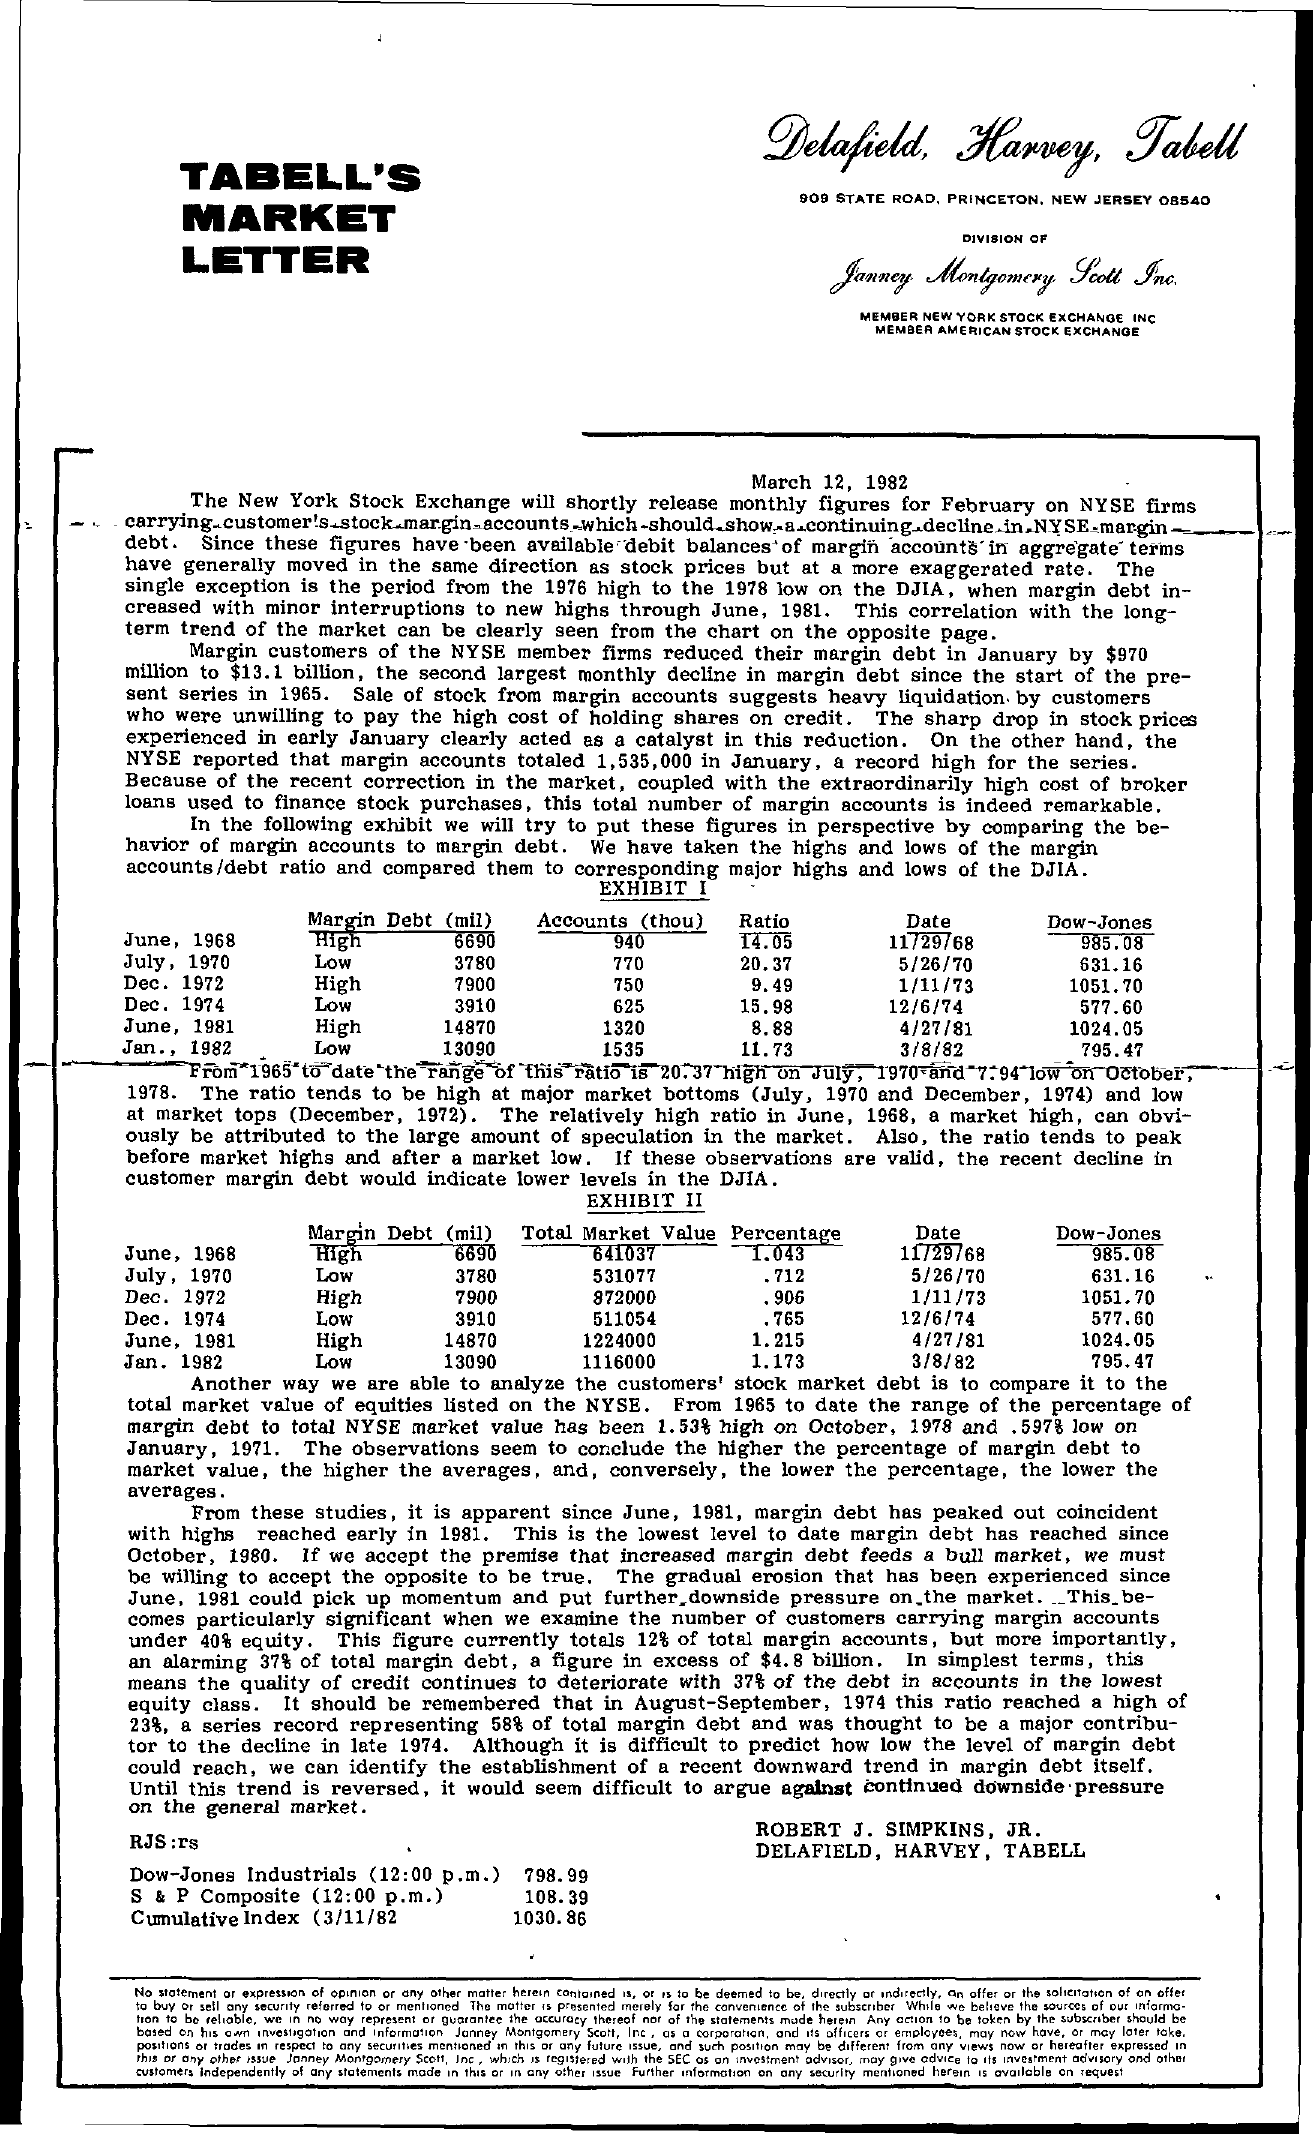 Tabell's Market Letter - March 12, 1982 page 1